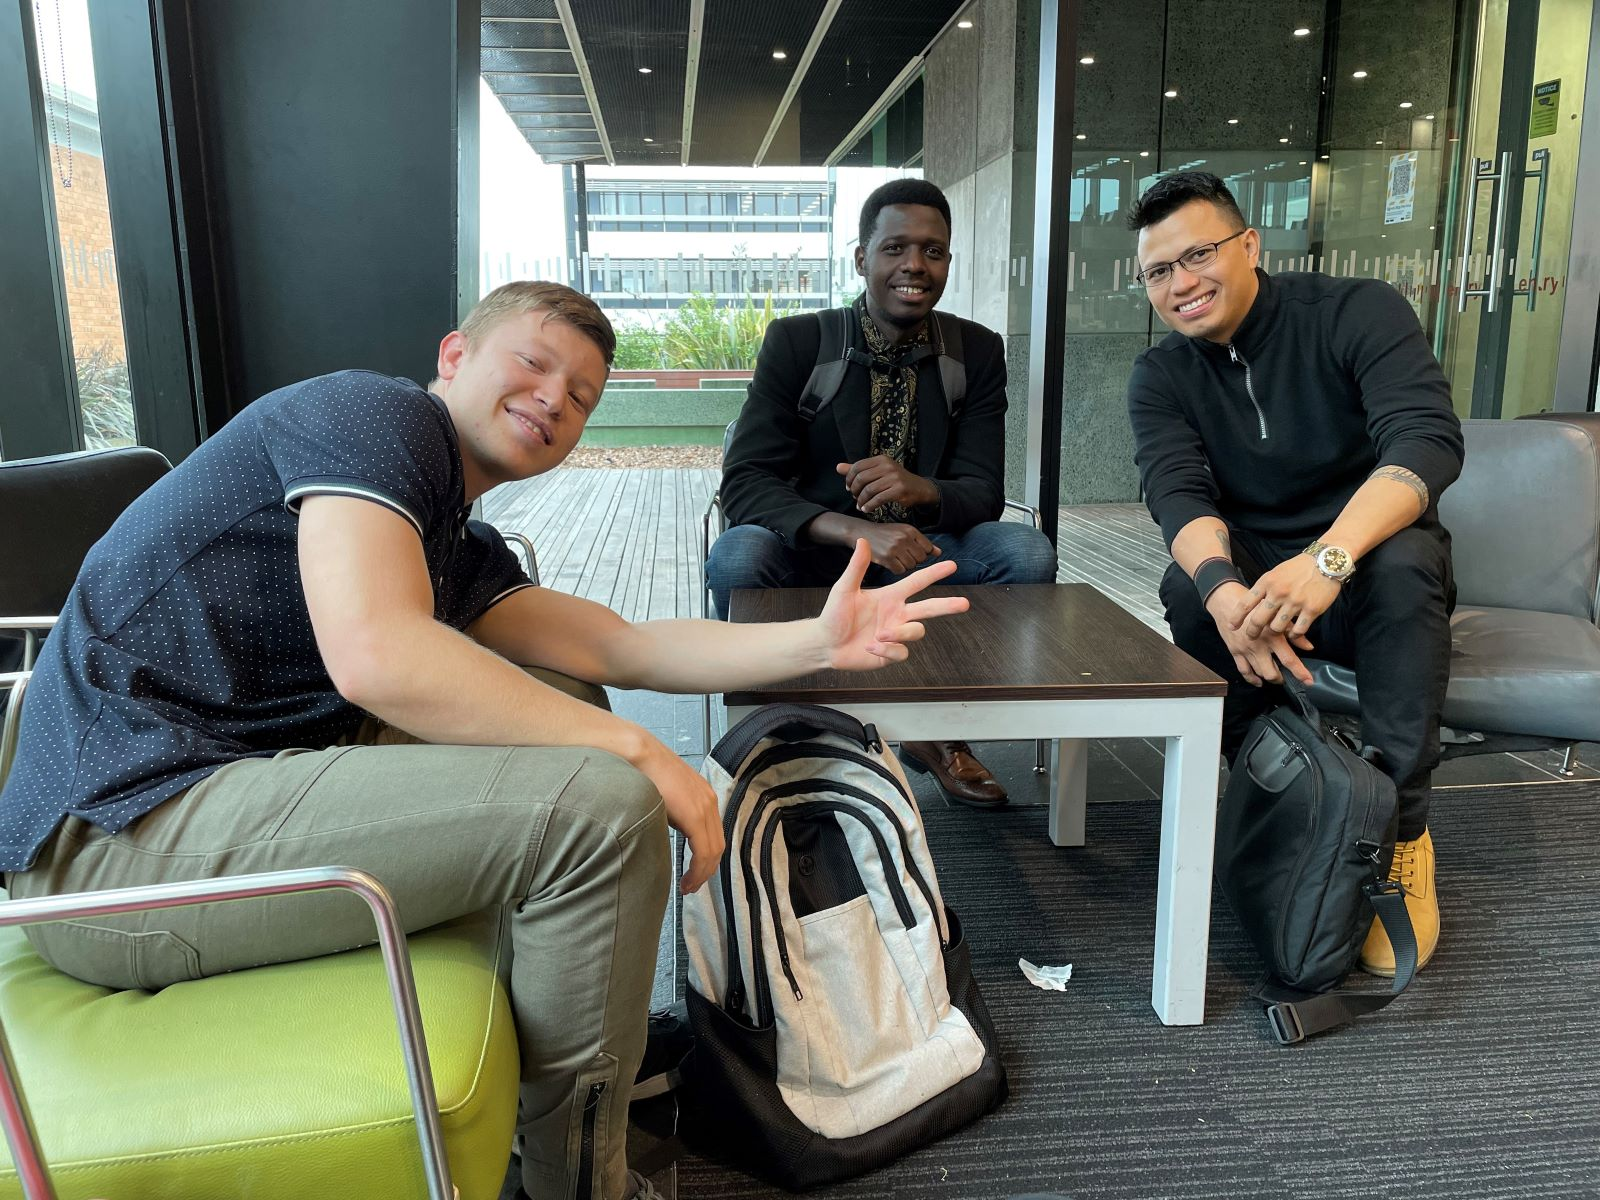 Former refugees Alisina, Hegimayi and Jhon all say they are getting supported beyond their expectations at Wintec